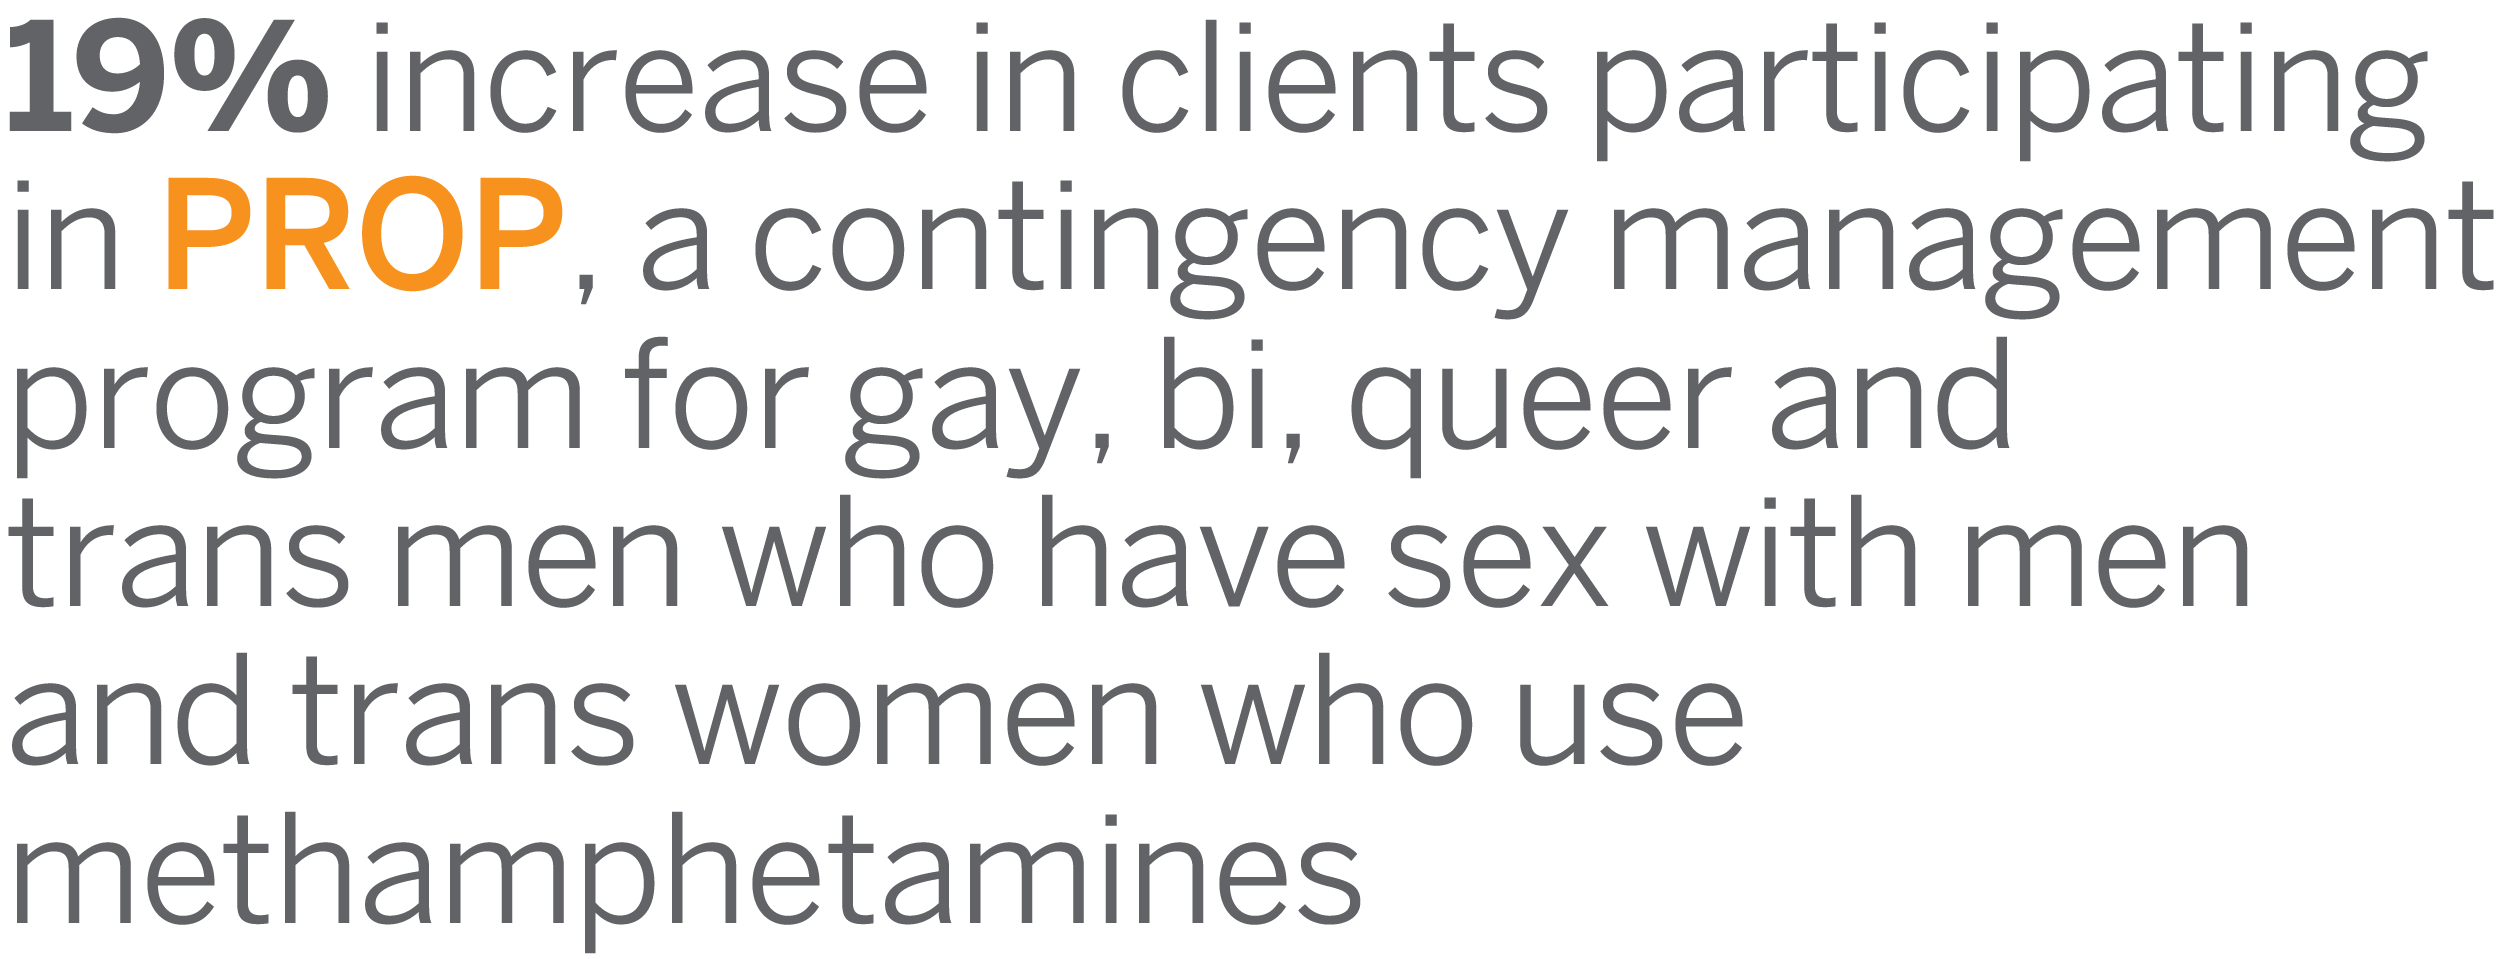 19% increase in clients participating in PROP, a contingency management program for gay, bi, queer and trans men who have sex with men and trans women who use methamphetamines